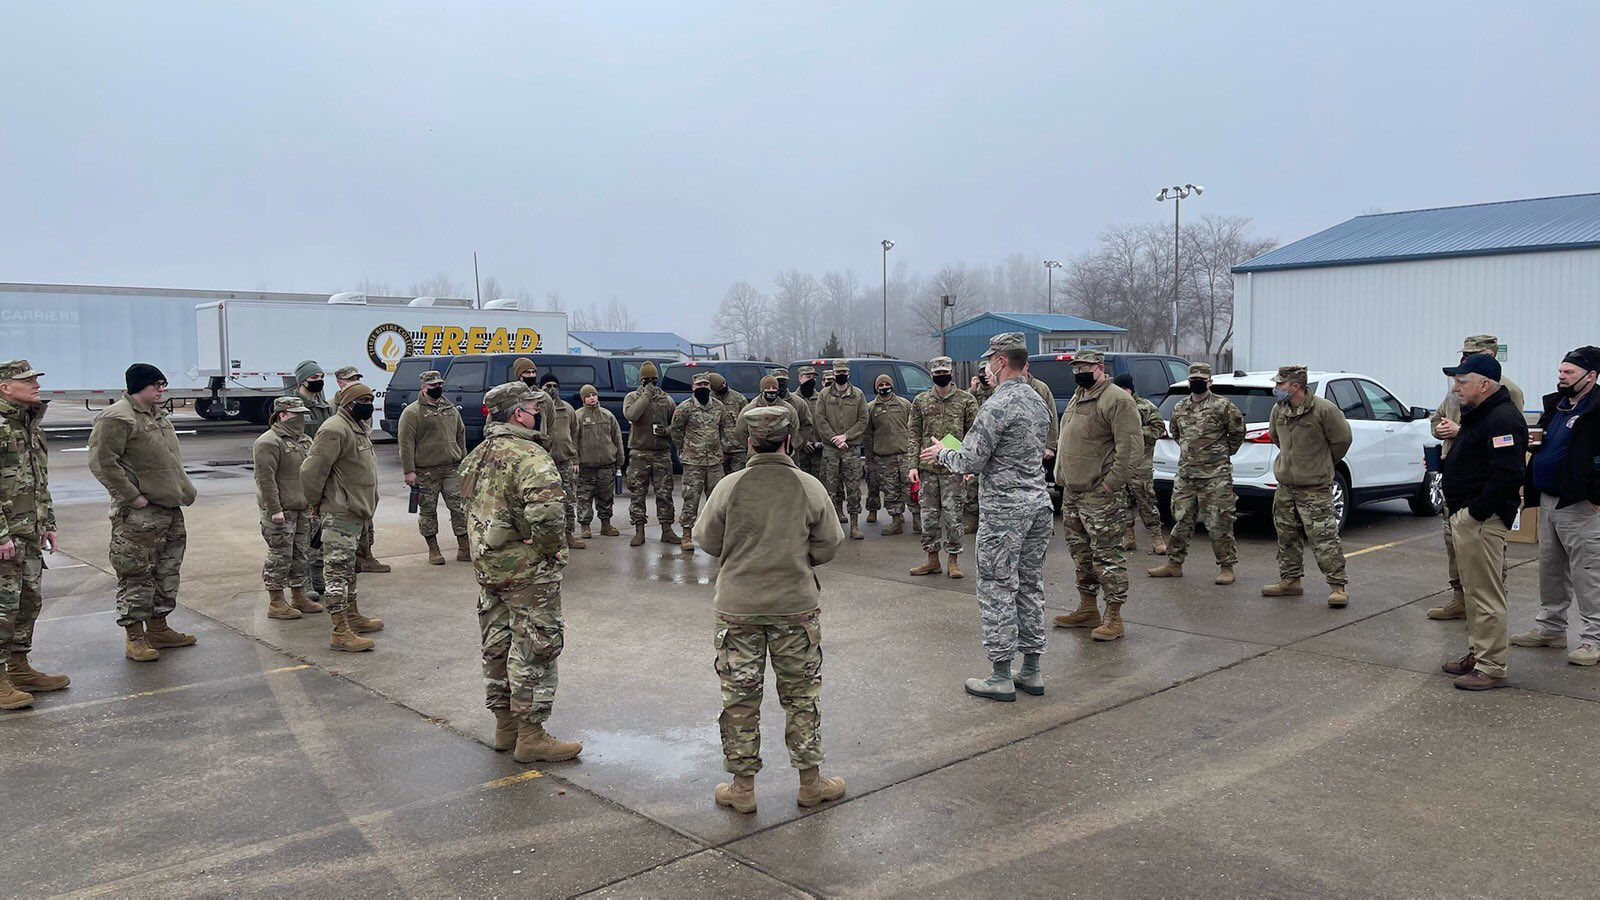 Members of the Missouri National Guard hosting Missouri's first mass COVID-19 vaccination site in Poplar Bluff on Jan. 22.